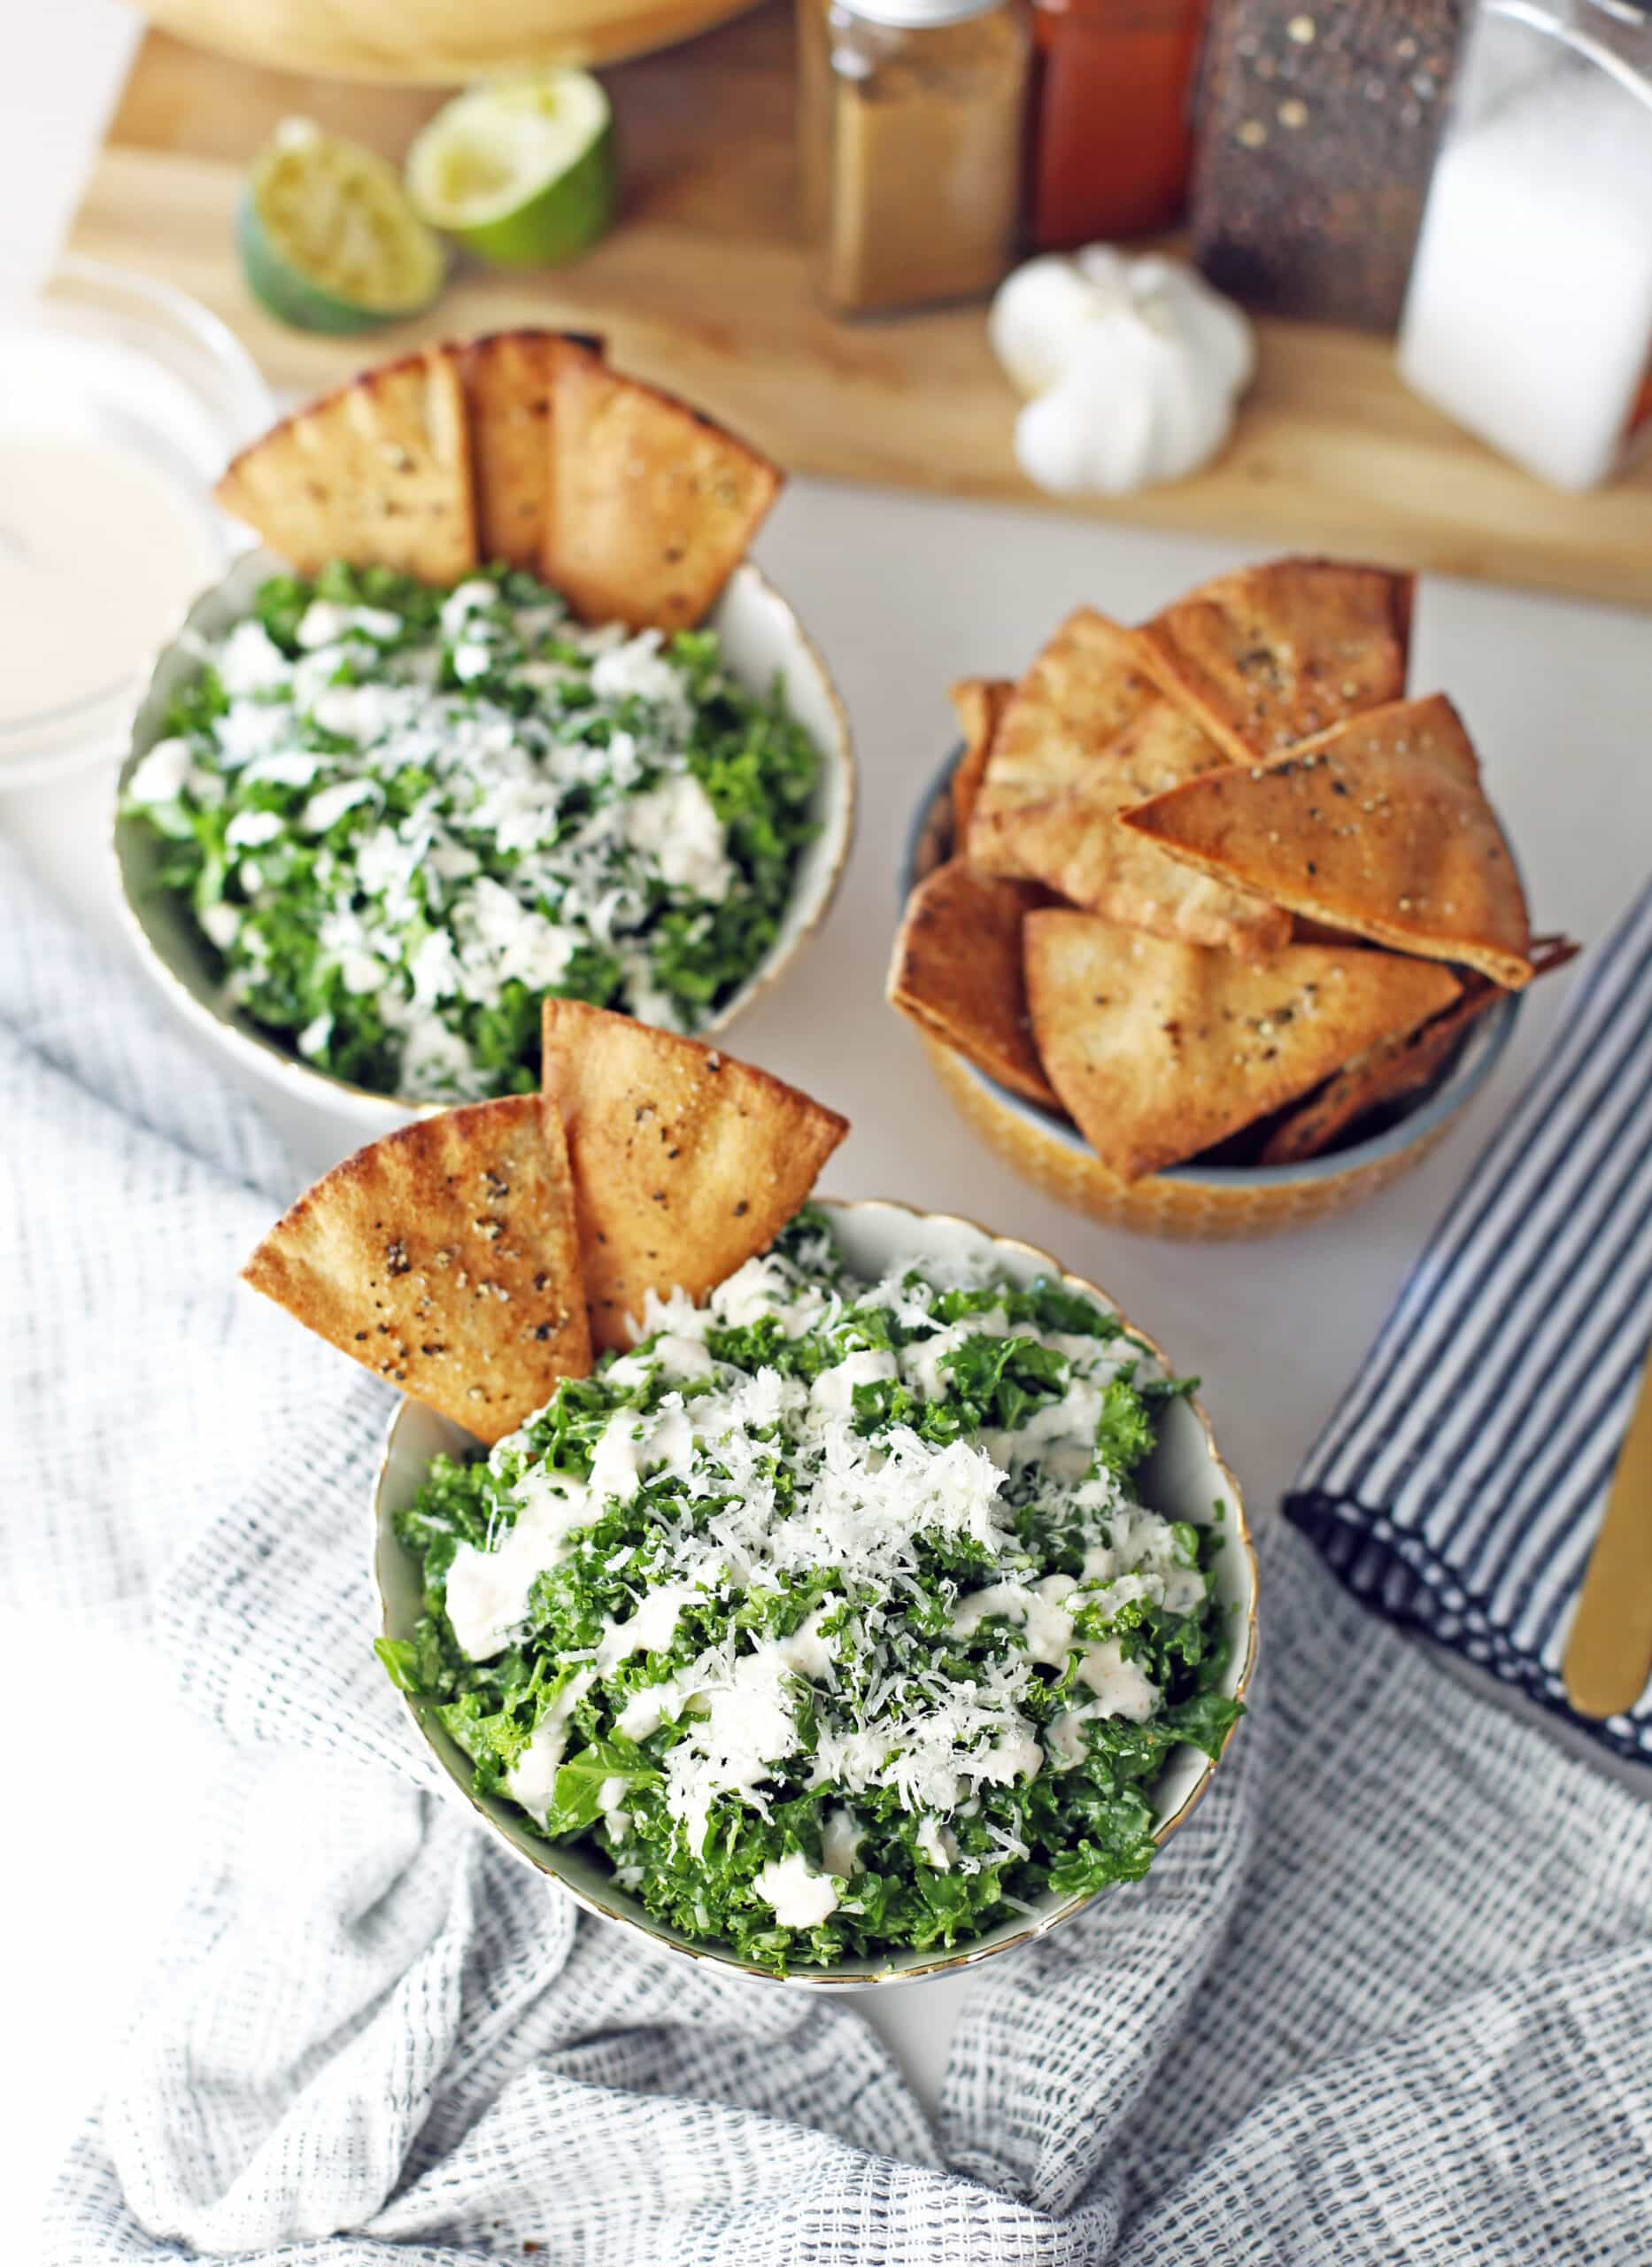 An overhead view of a small bowl of pita chips and two bowls of kale salad topped with pita chips and garlic lime dressing.